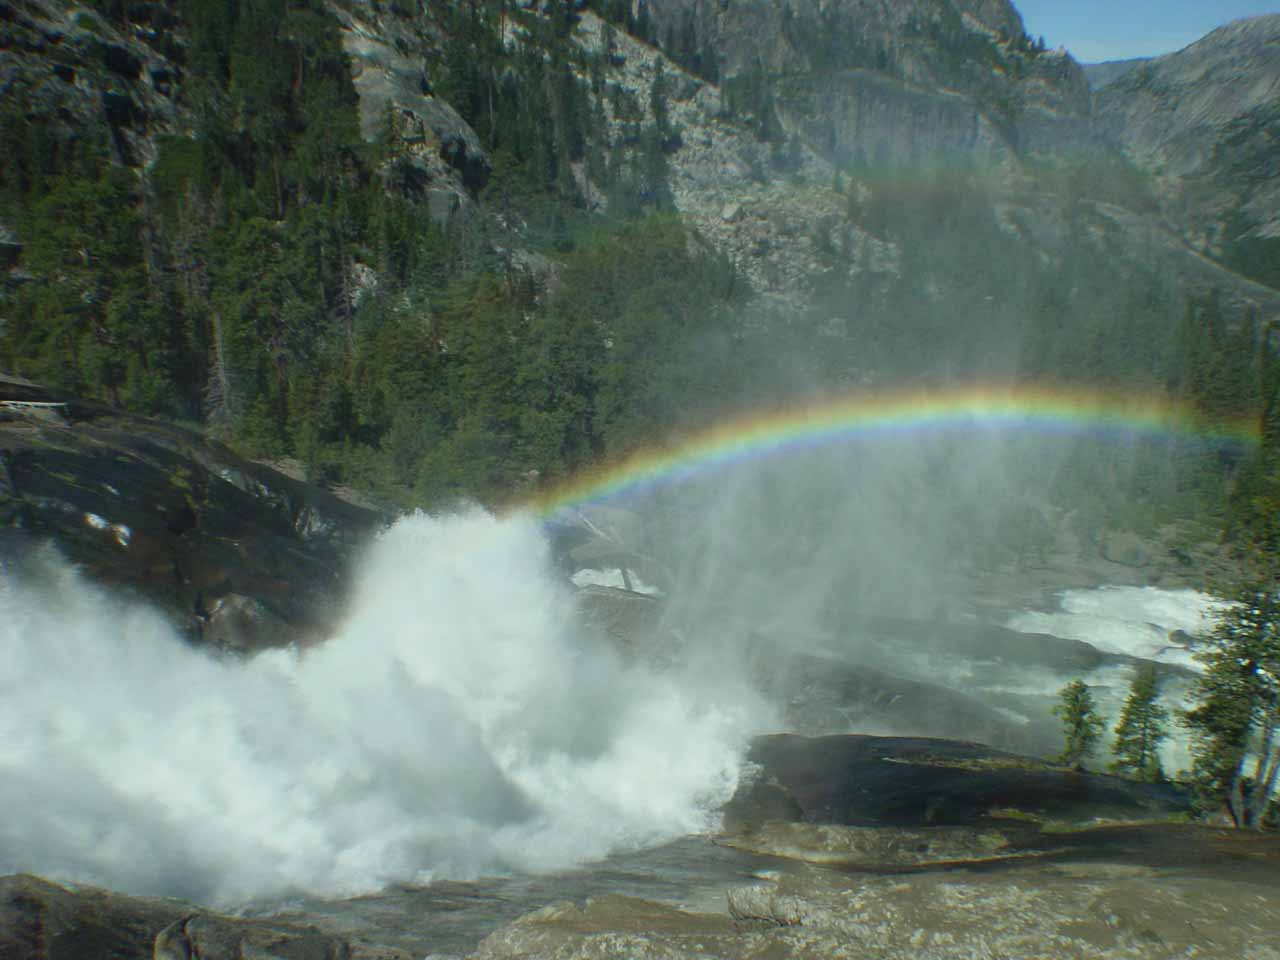 Just in time to see the double rainbow caused by Waterwheel Falls